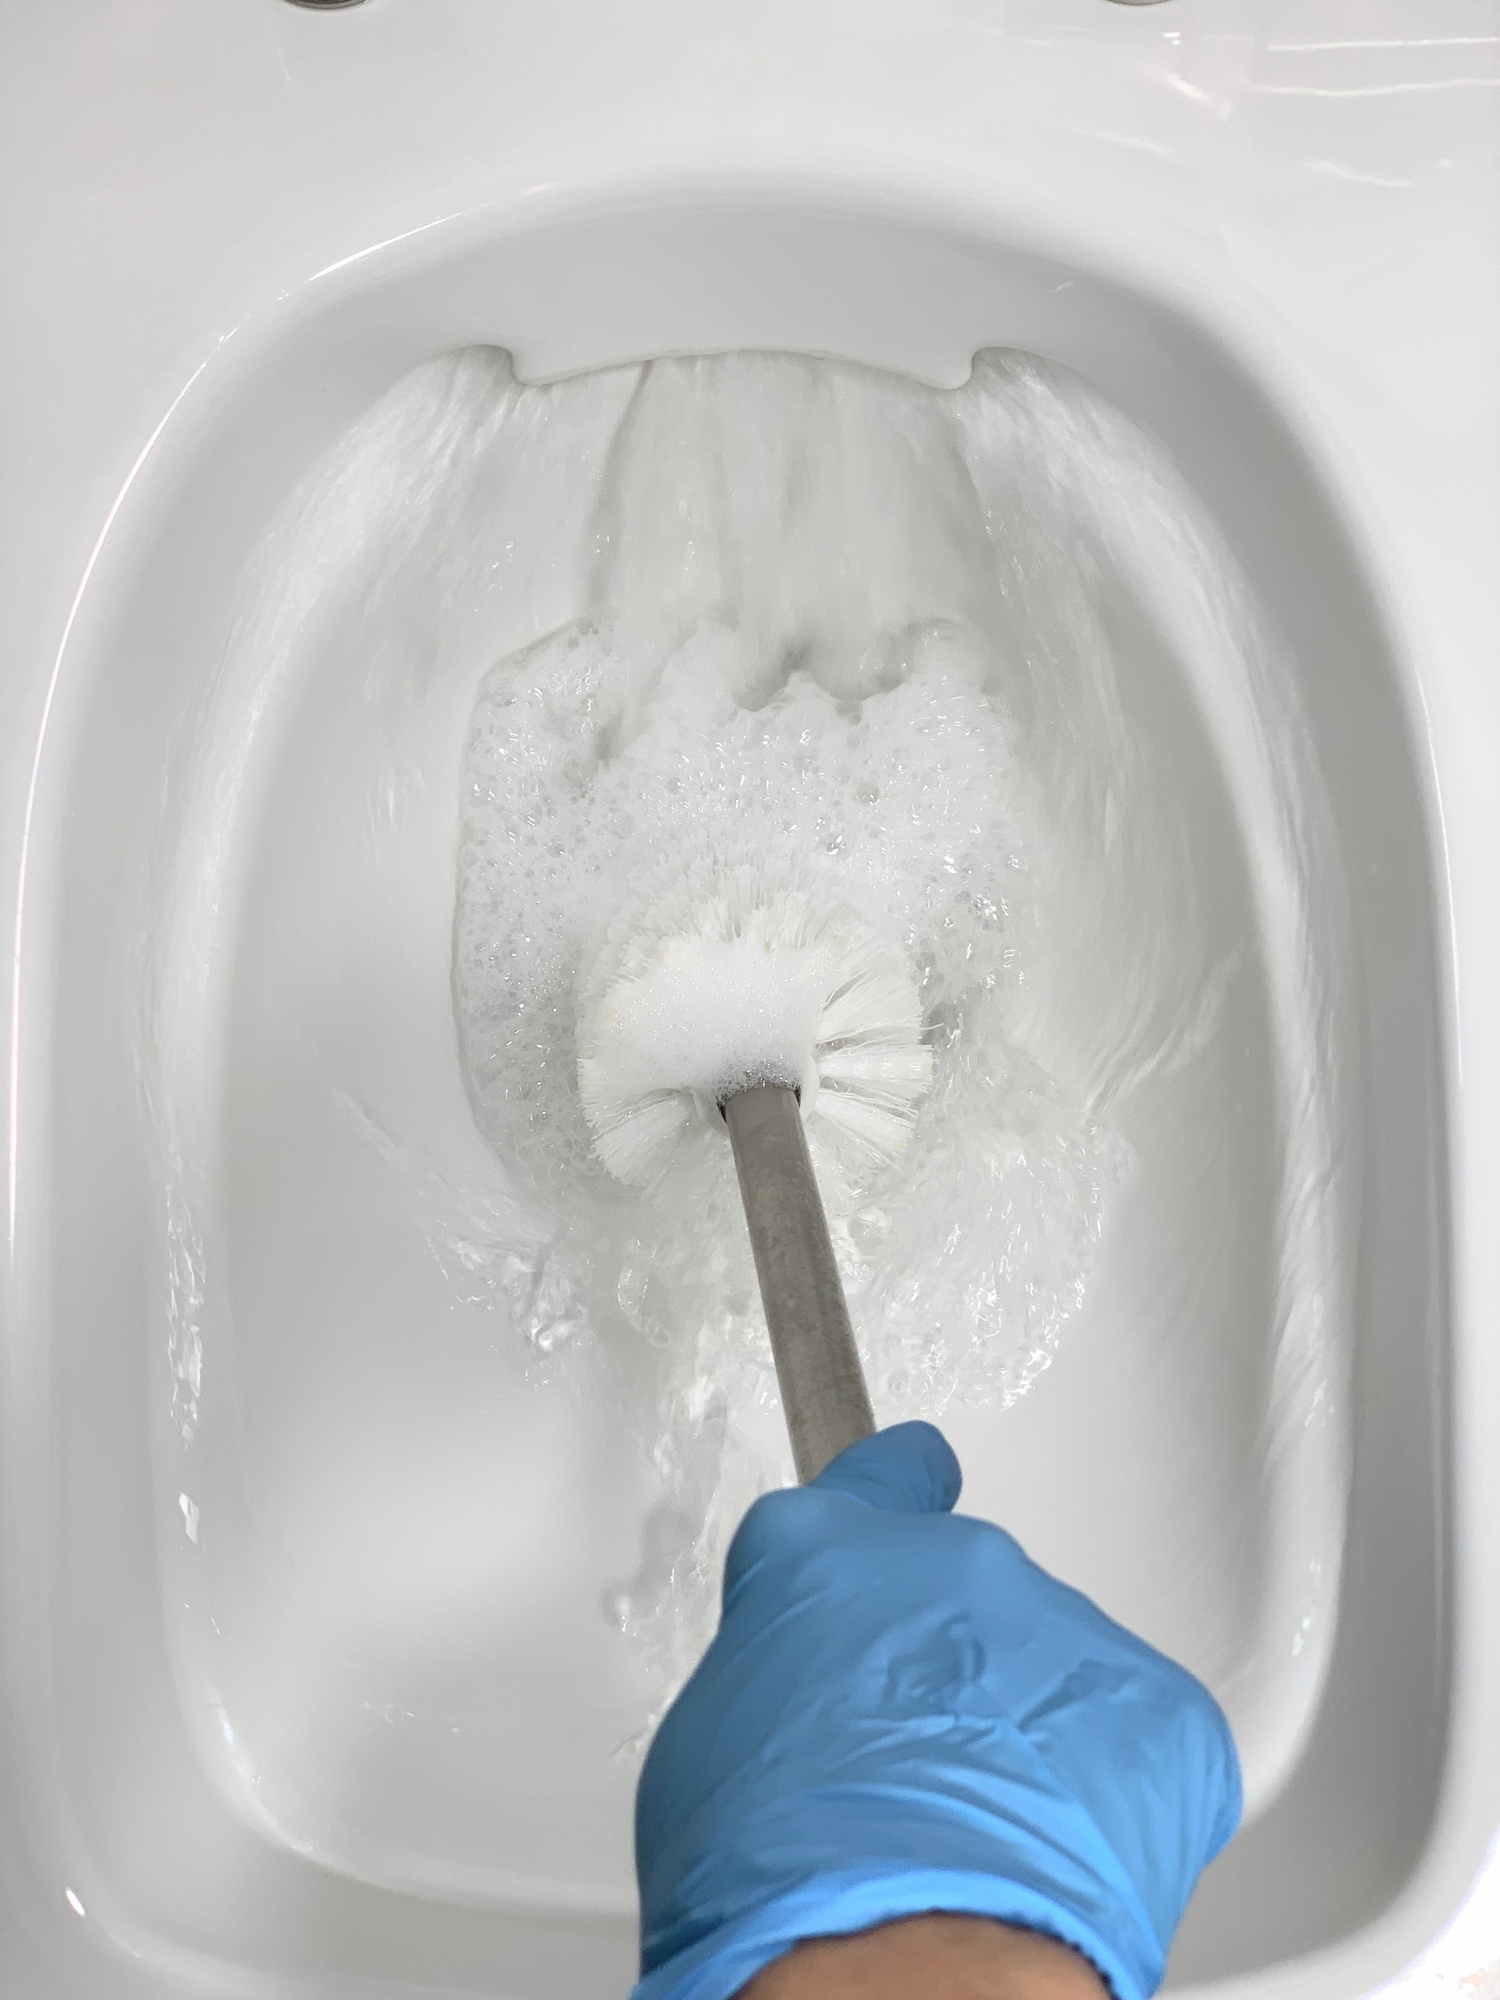 A man in gloves cleans the toilet with a brush.